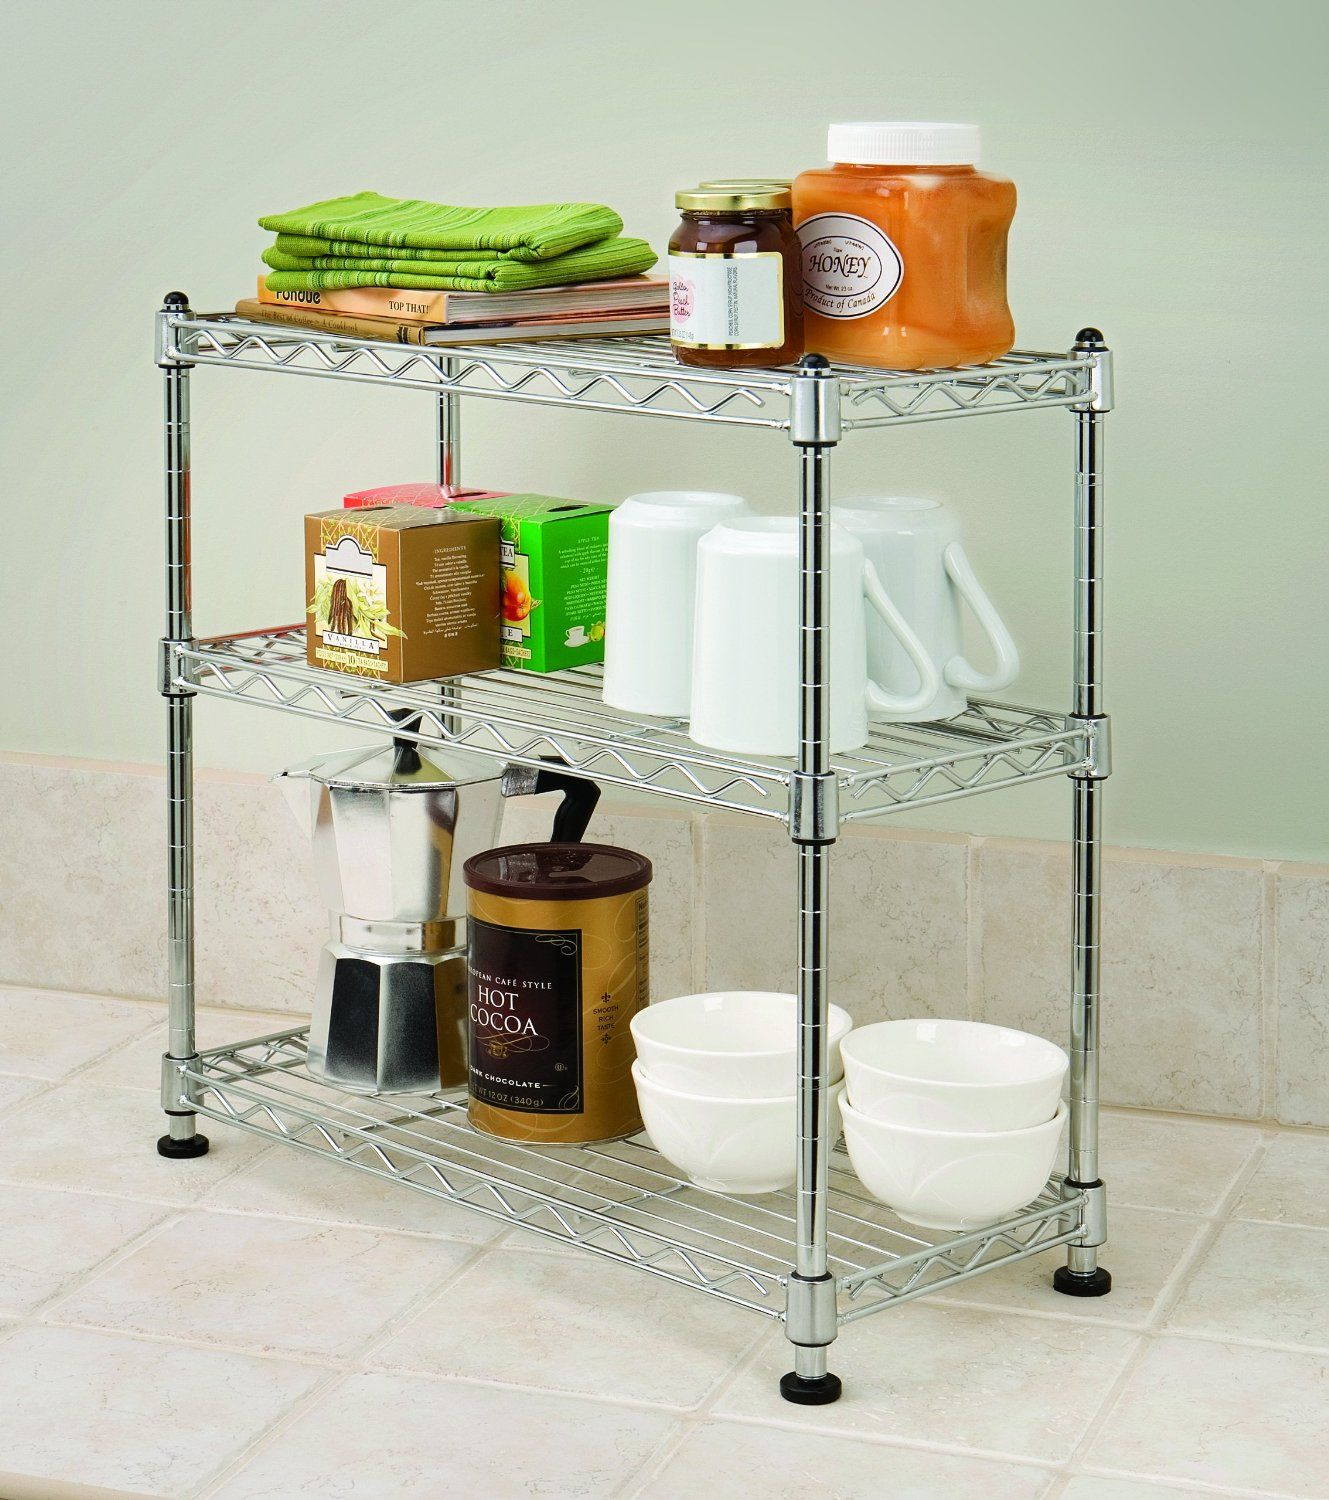 Amazon.com - Seville Classics 3 Shelf Cabinet Organizer, 17.5 by 7.5 by 18.5-Inch, Steel Wire - Cabinet Accessories